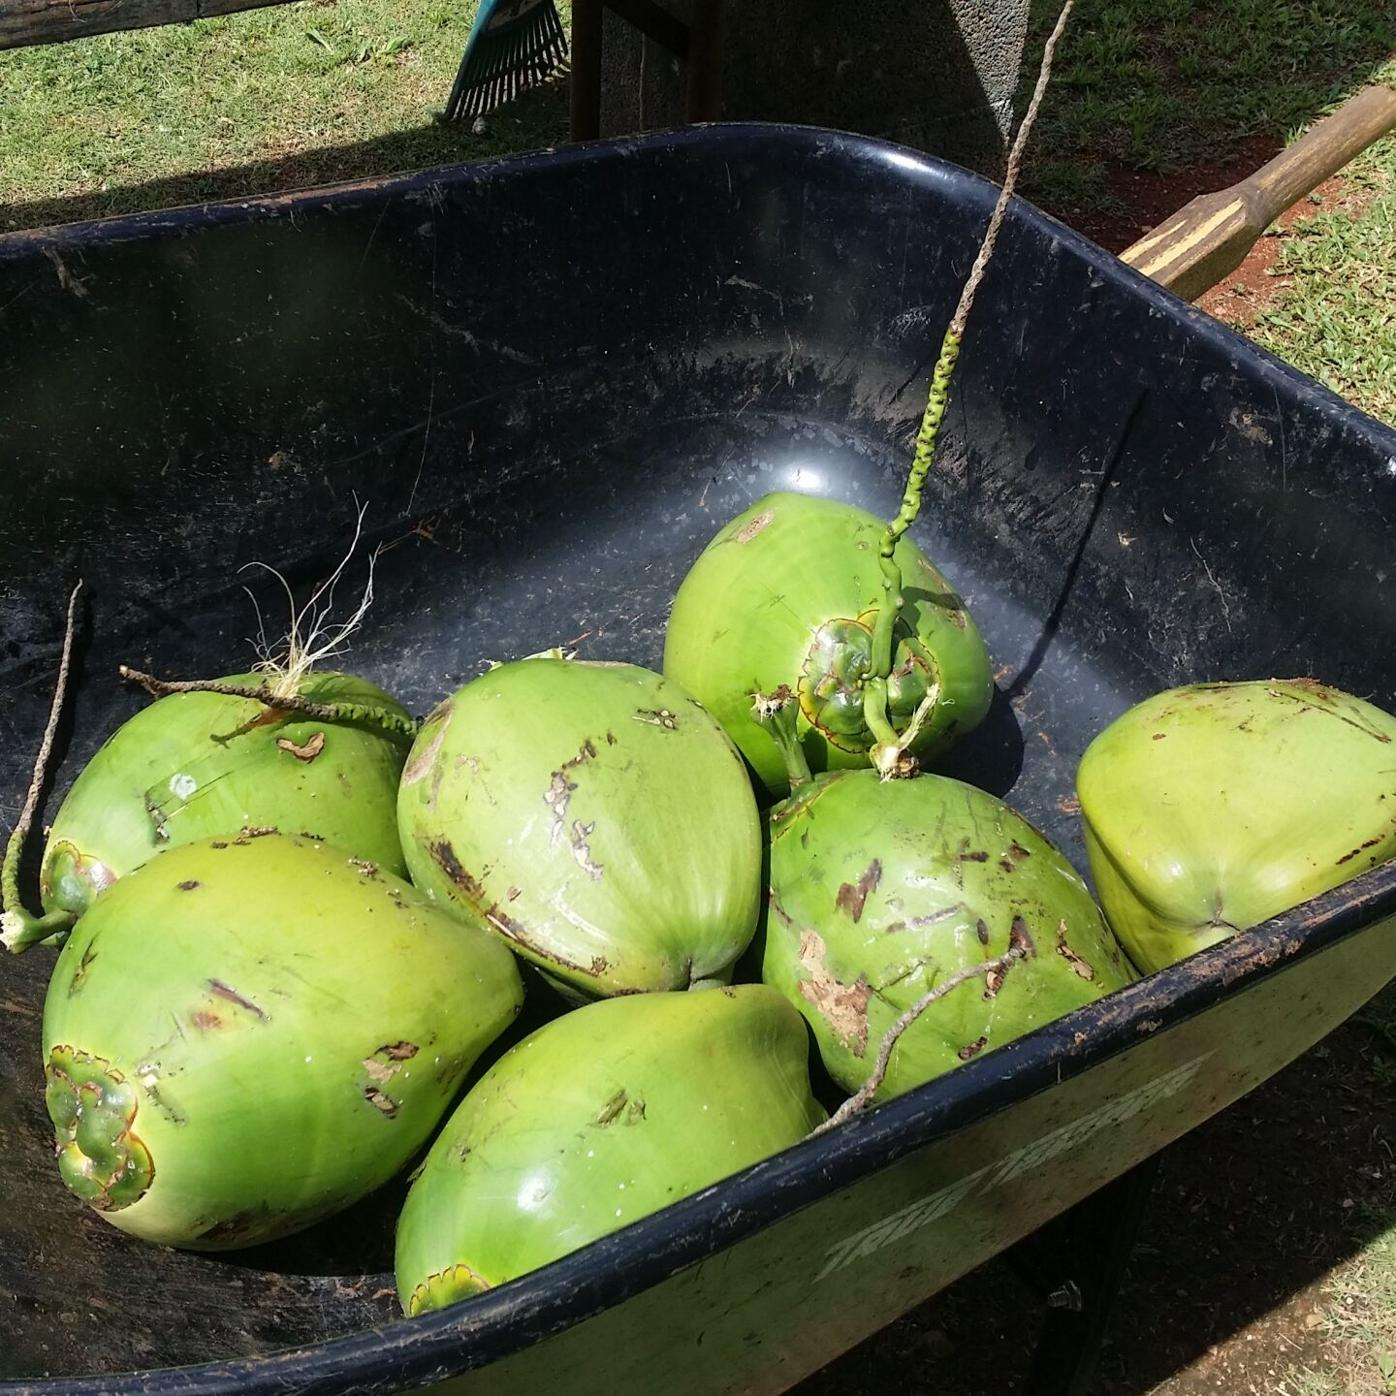 To månha or to coconut? That is the question